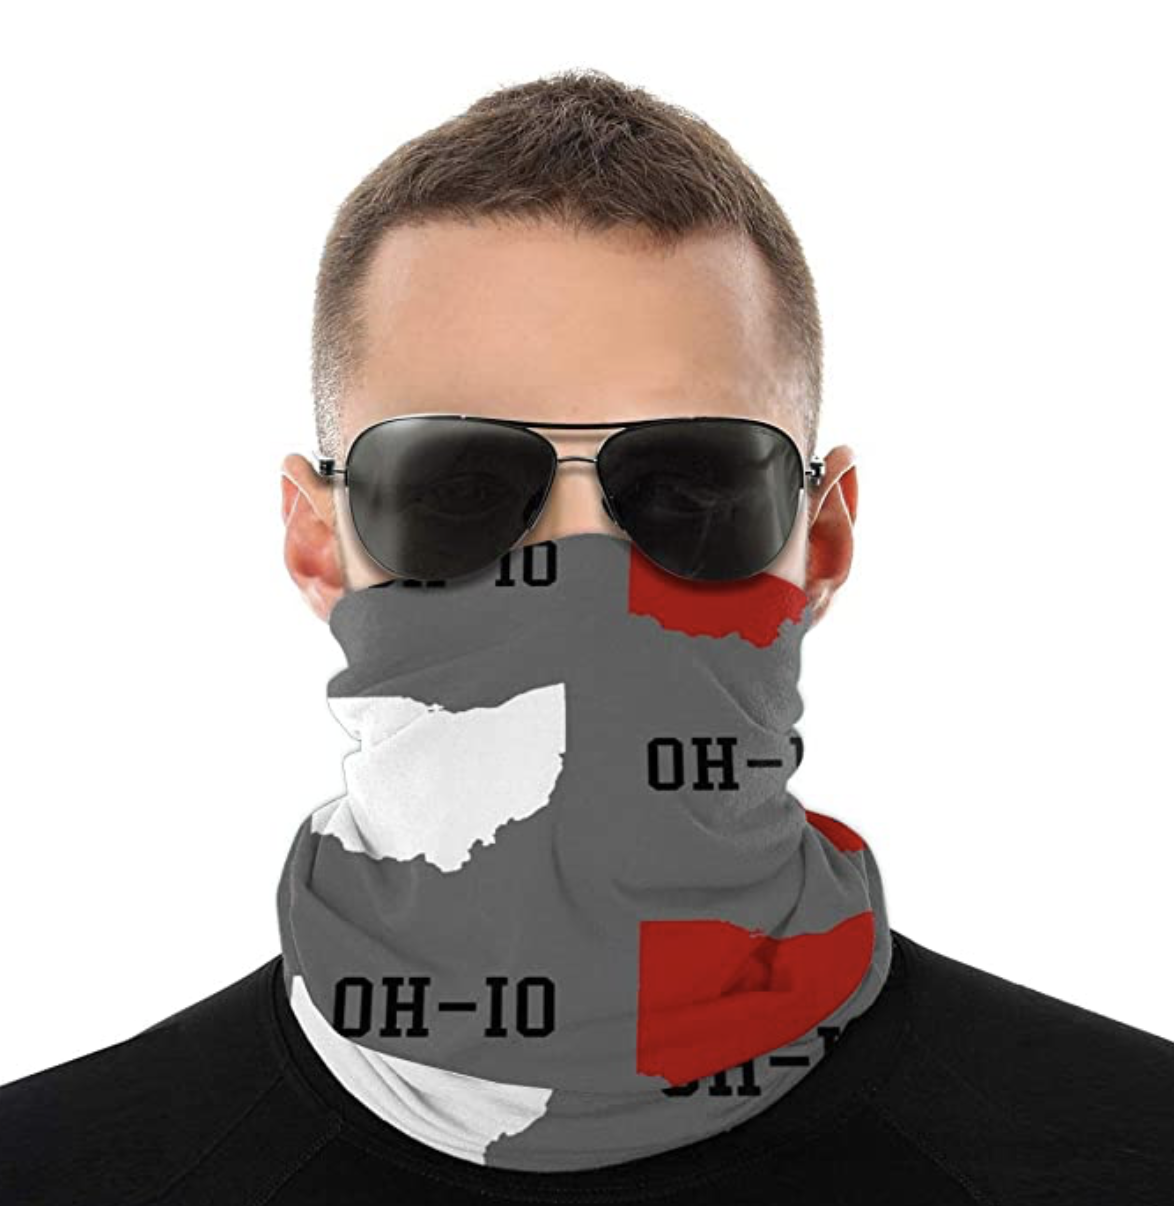 Balaclava Tube Face Mask Ohio State Gray Seamless UV Sun Windproof Dustproof Neck Gaiter Scarf Upgraded Version Wider Coverage Cool Breathable Sports Leisure Worker For Men Women